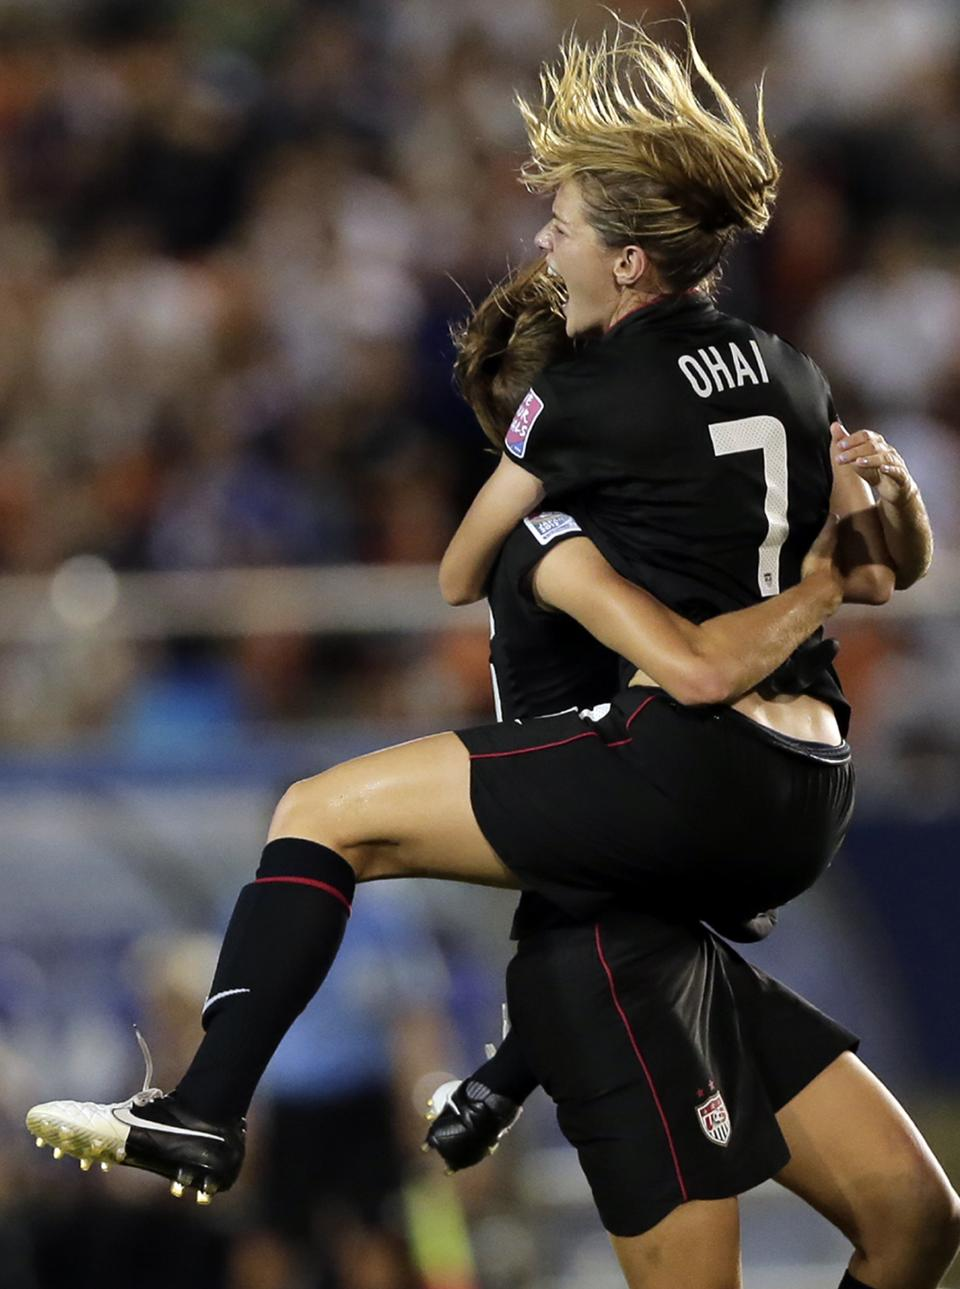 Kealia Ohai (7) of the United States celebrates after scoring a goal against Germany during their final match of U20 women's World Cup in Tokyo, Saturday, Sept. 8, 2012. (AP Photo/Itsuo Inouye)